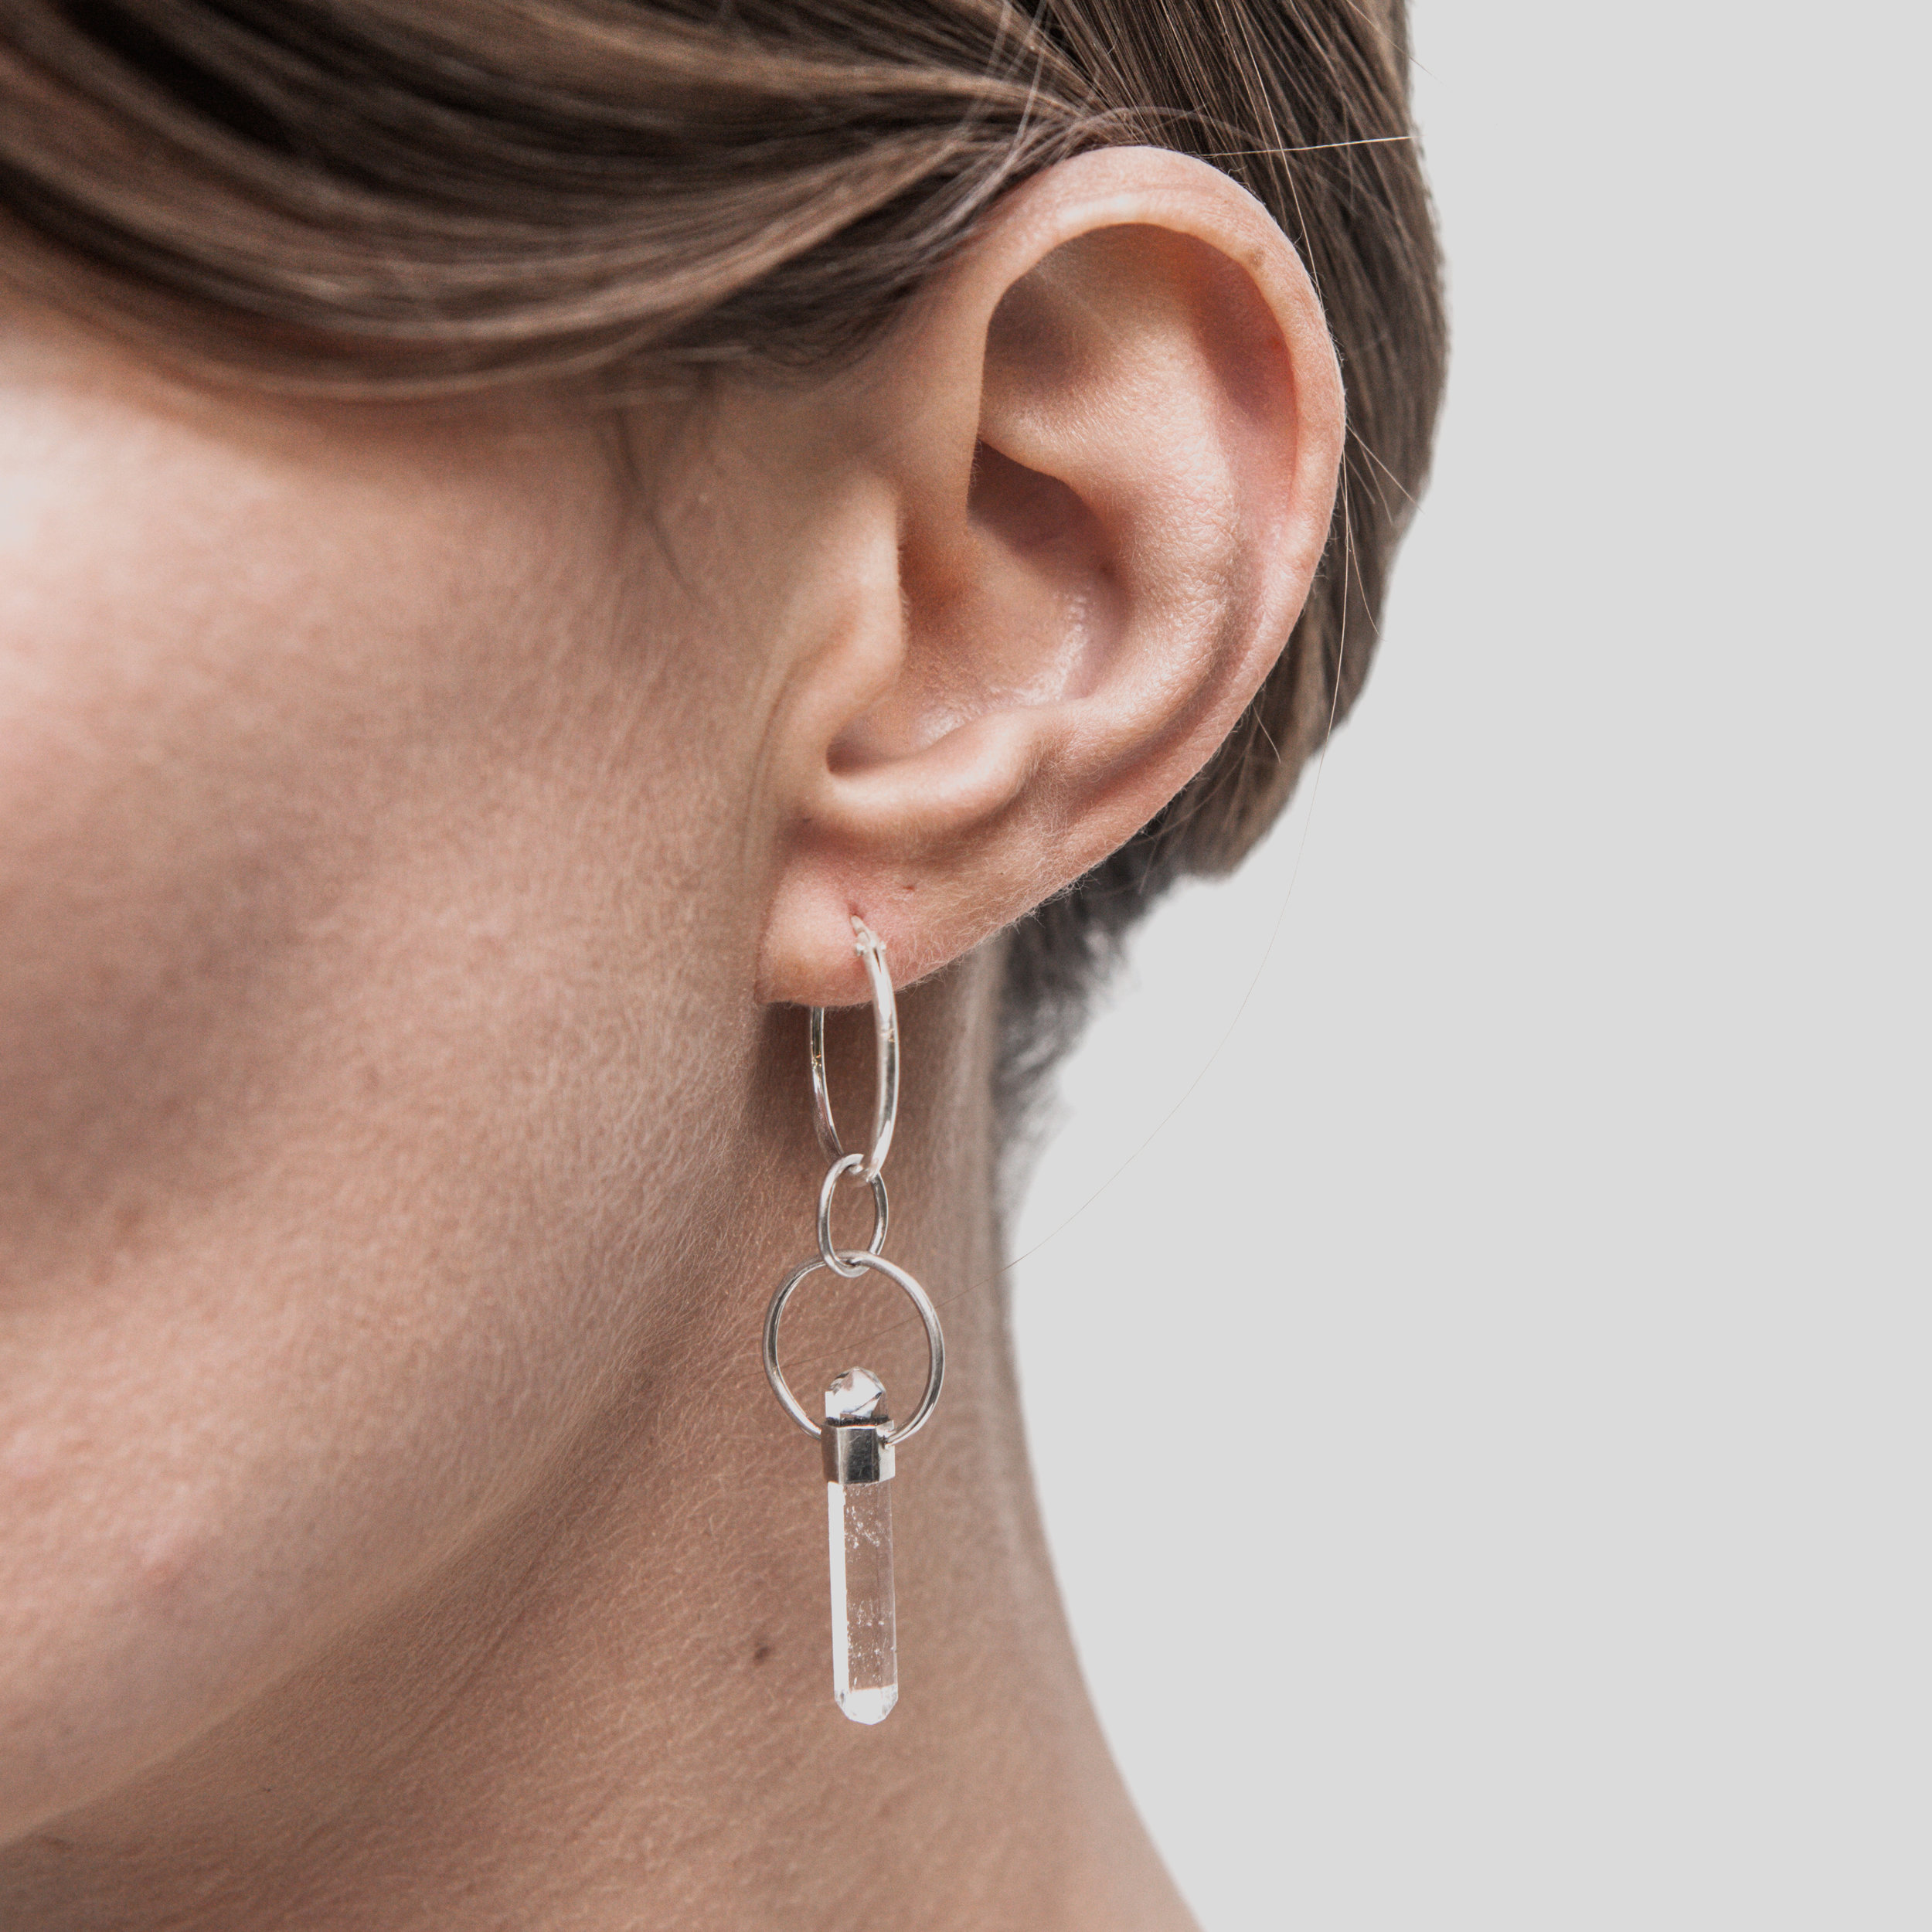 EYESEEI. EXPANSION earring with a roughly cut clear quartz crystal wand set in Sterling silver. Price: 440 SEK Photo: Olle Enqvist